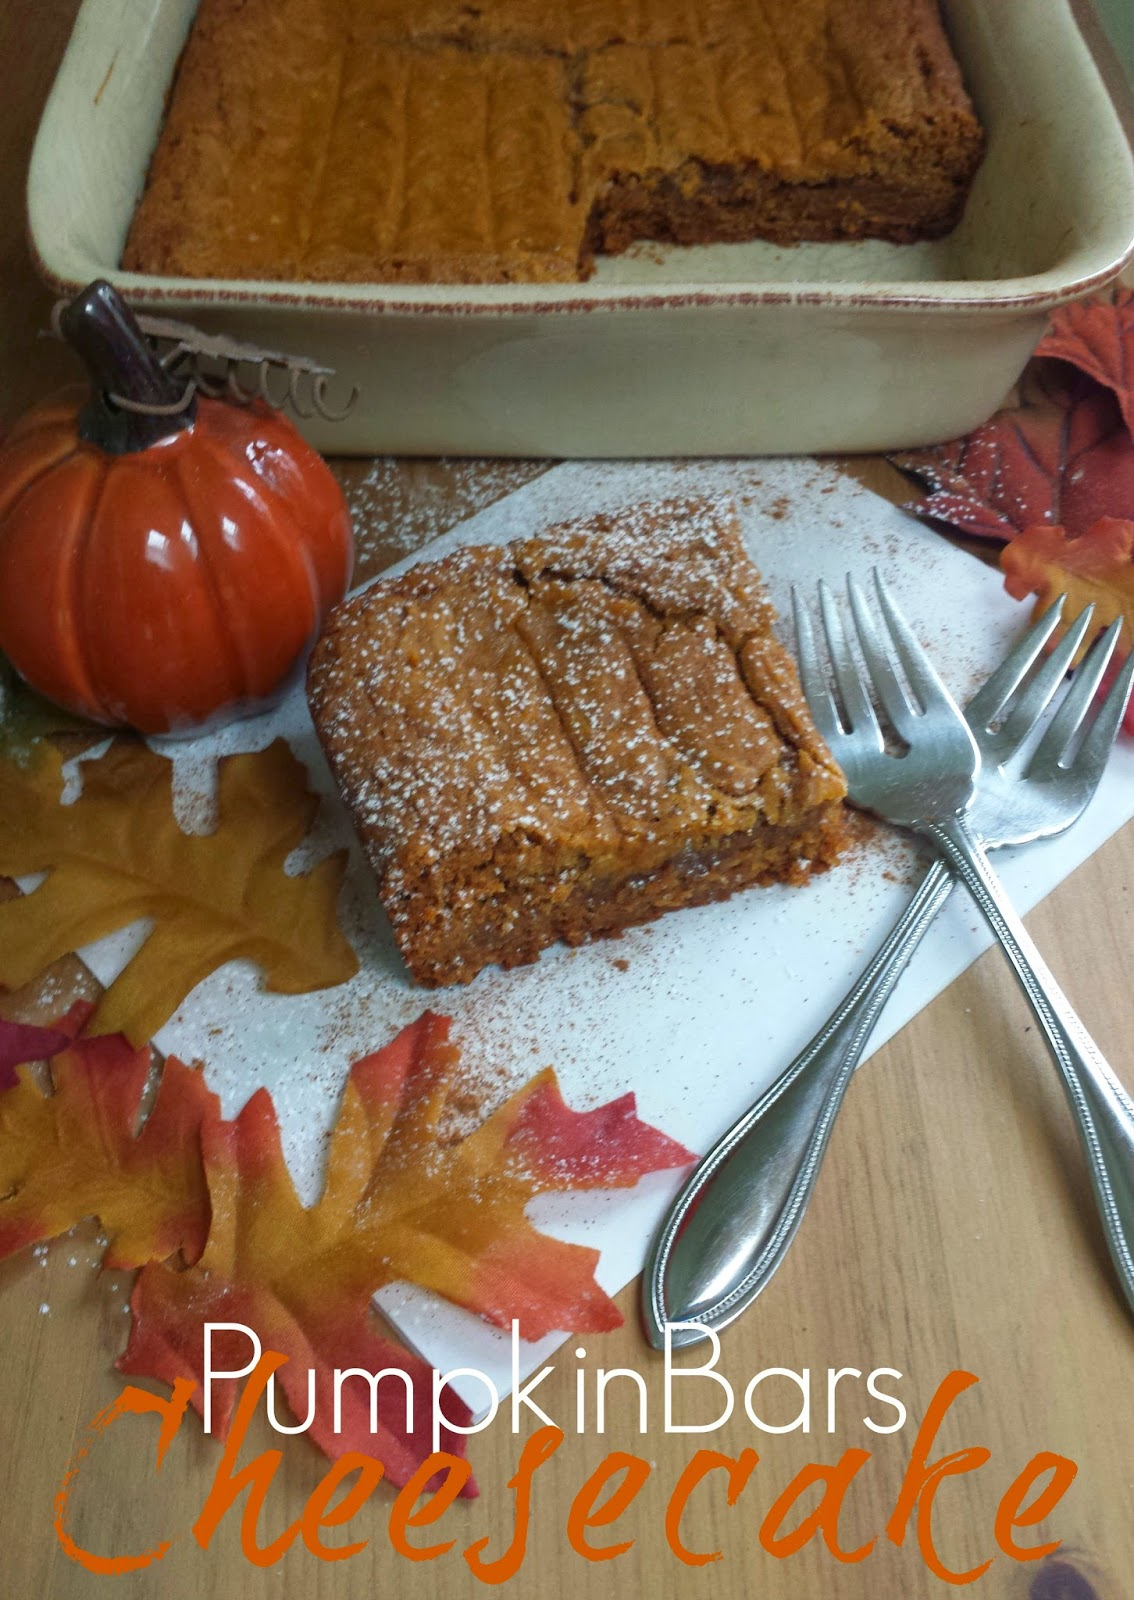 Three kids and a fish: pumpkin bars cheesecake